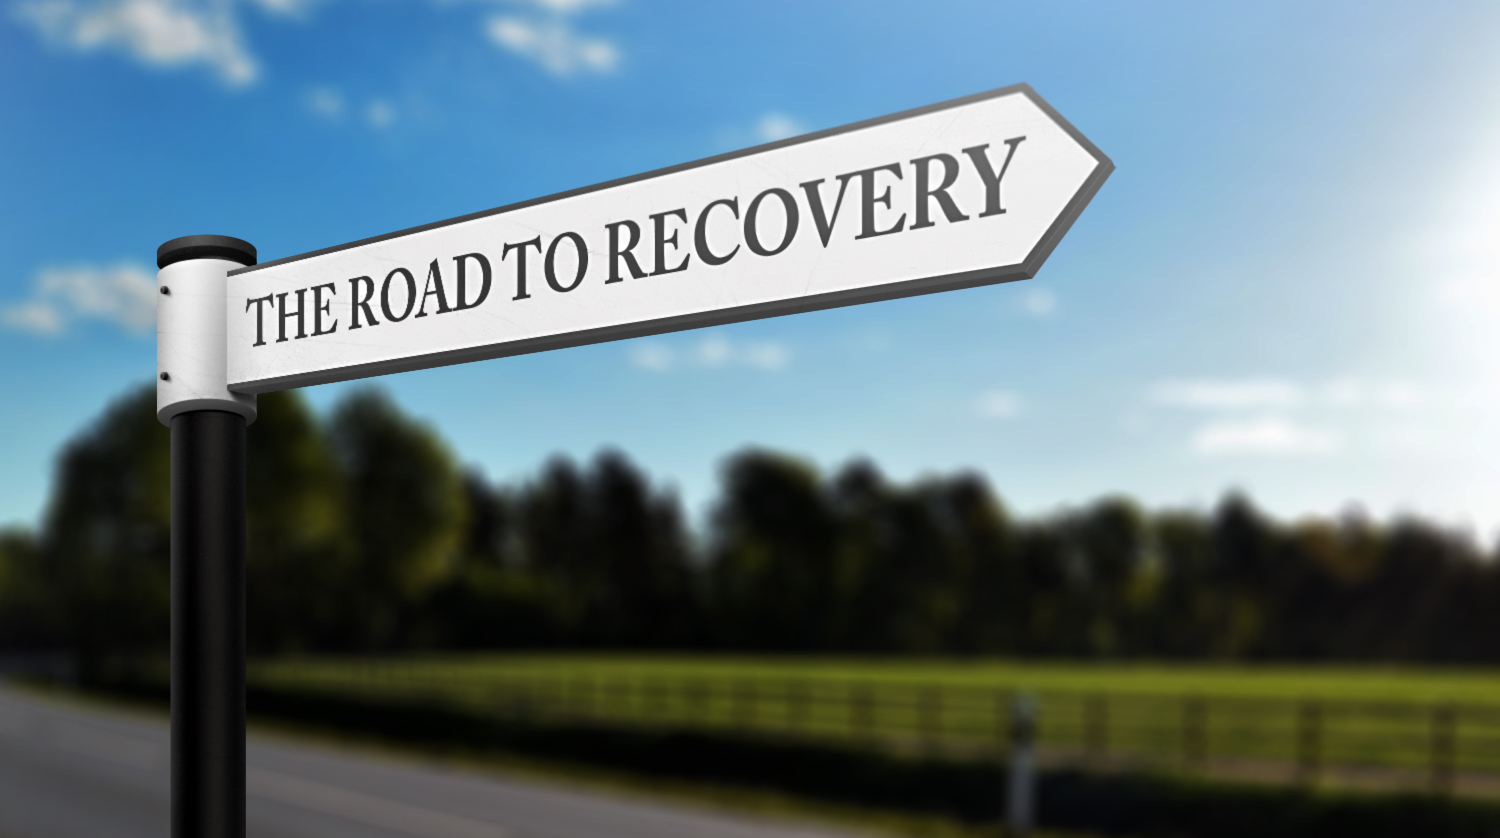 road-to-recovery.jpg